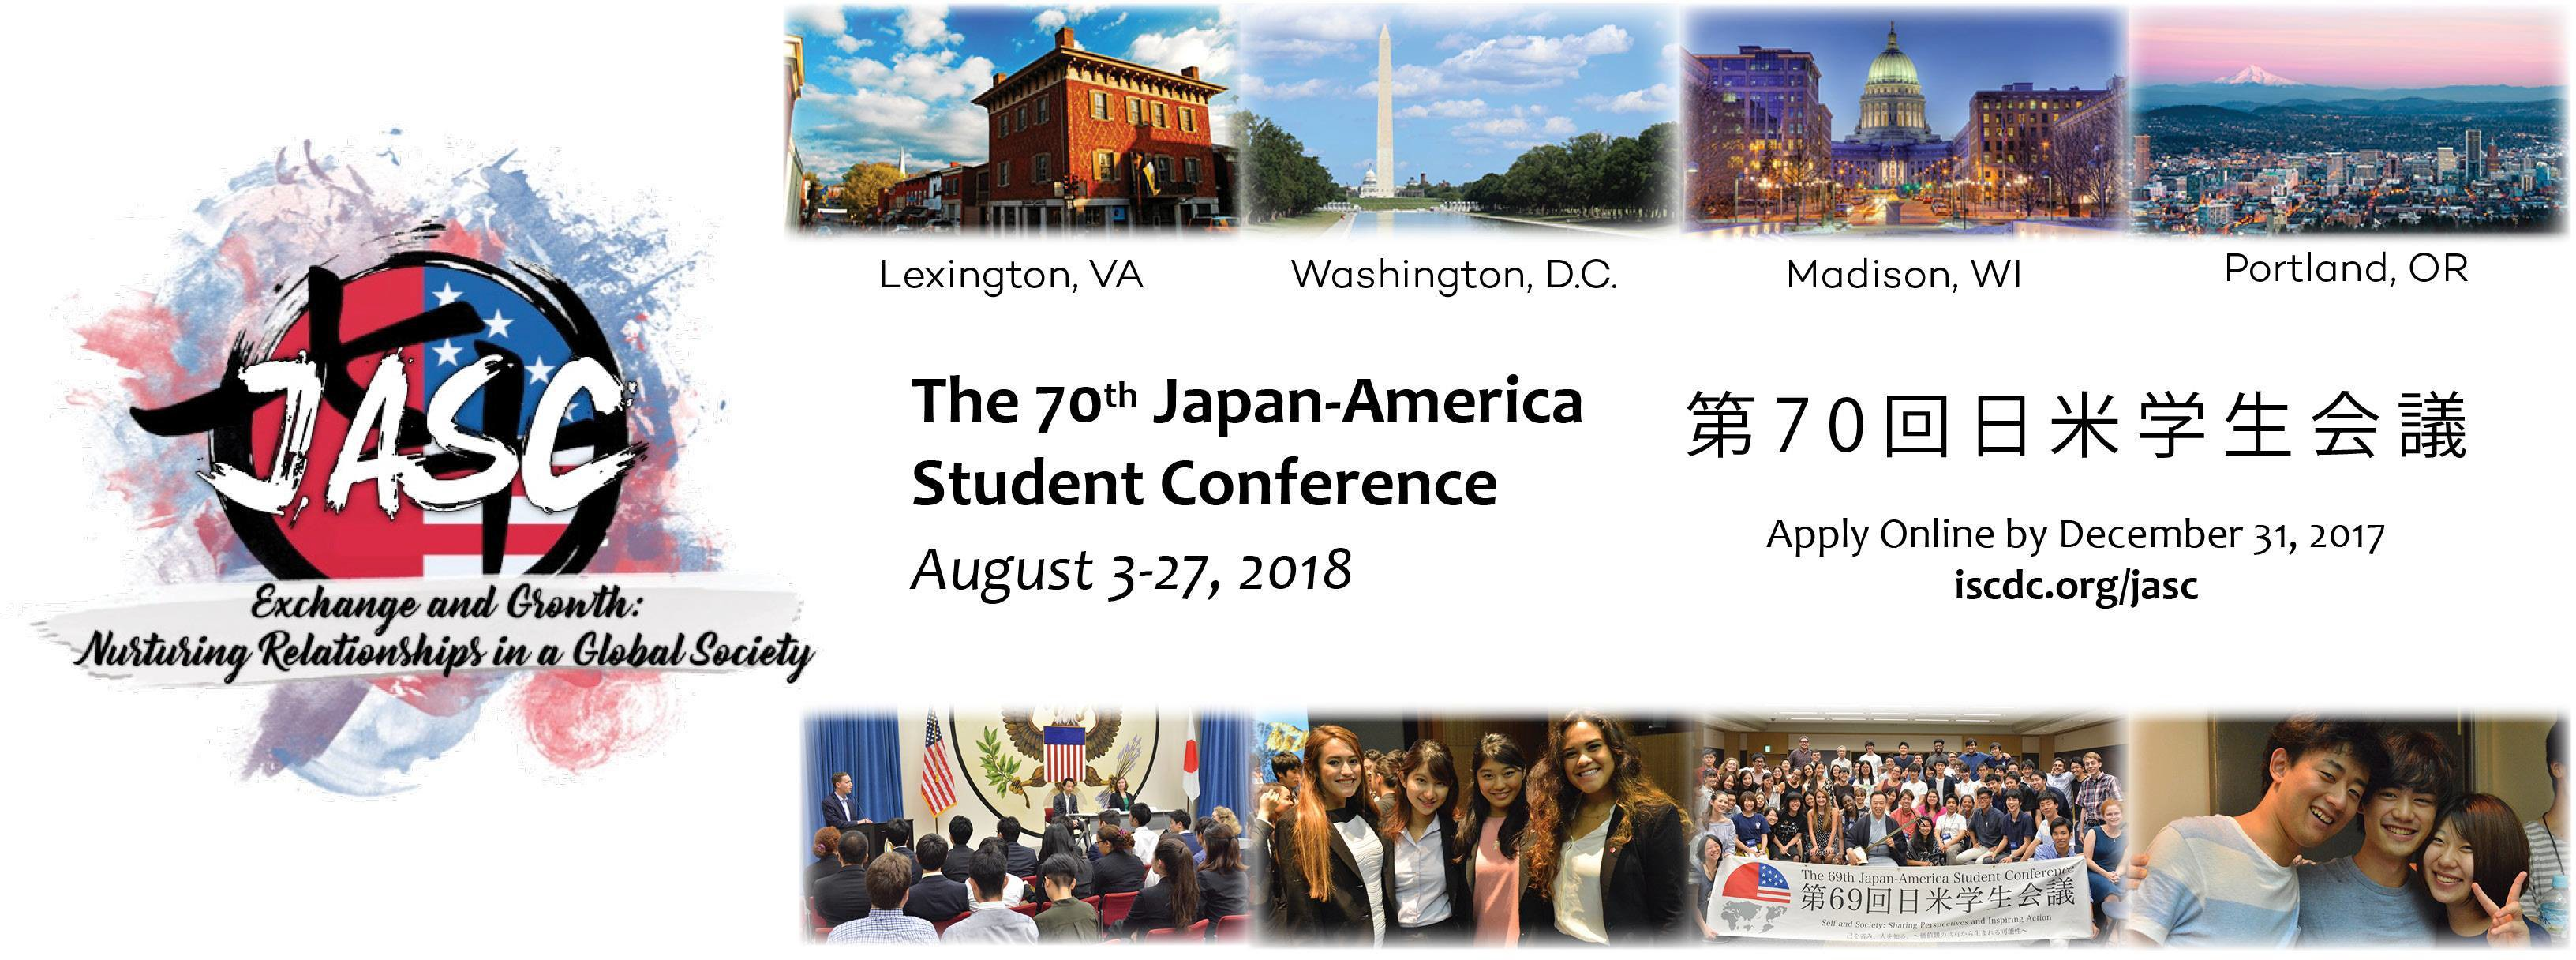 Japan-America Student Conference report